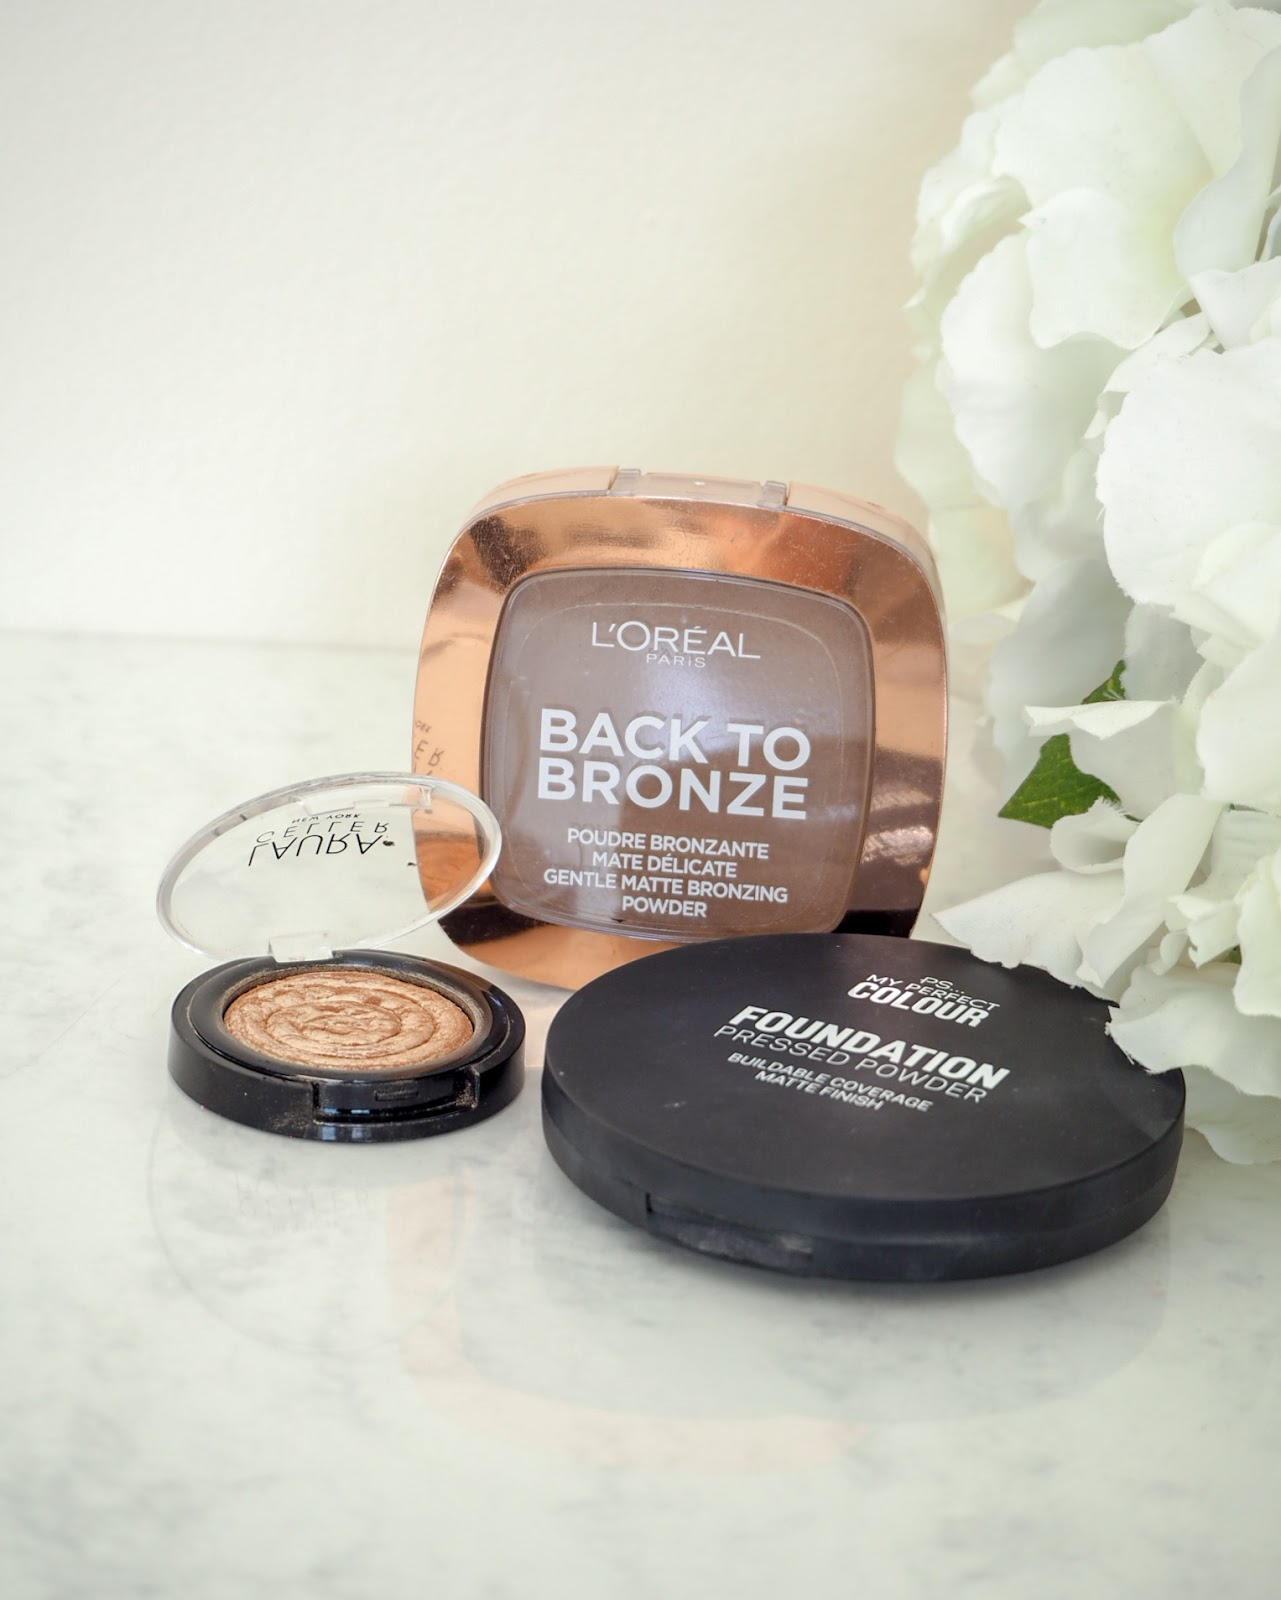 Collection of makeup powders